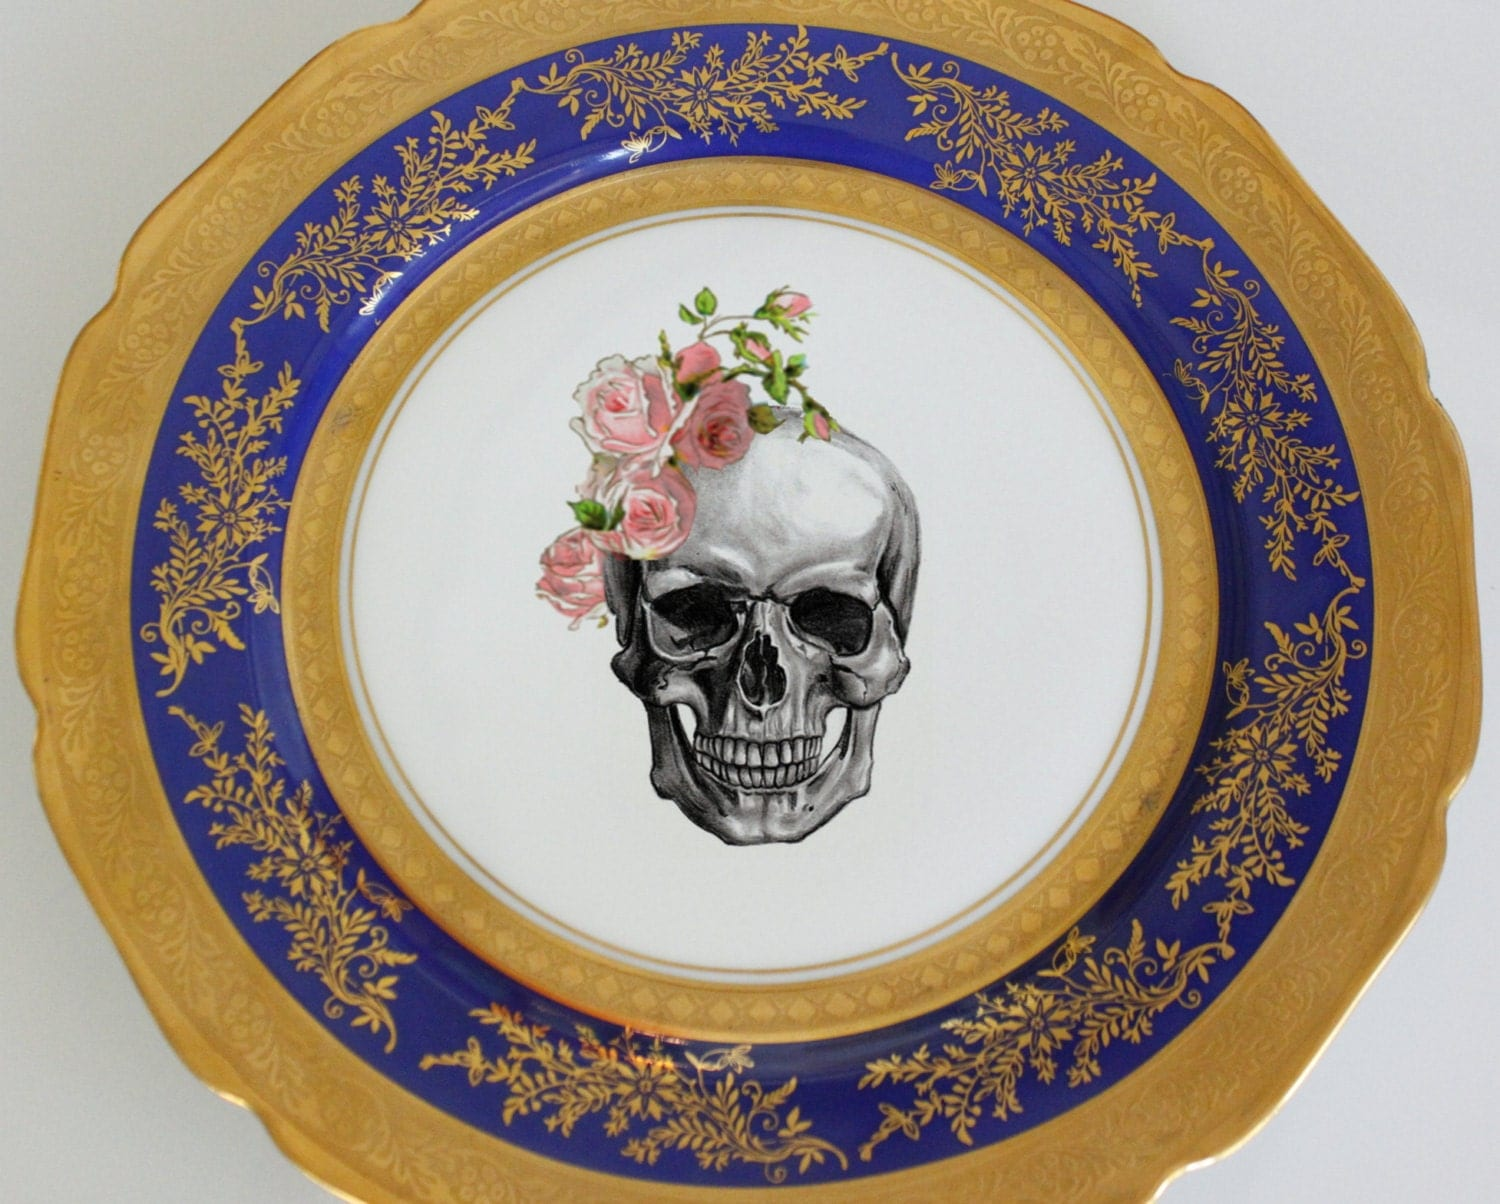 Blue and Gold Vintage Skull Dinner Plate 10.5  Halloween Dishes Skull Dinnerware Goth Plates Blue Gold Dinnerware Customizable  sc 1 st  WTF Porcelain & Blue and Gold Vintage Skull Dinner Plate 10.5